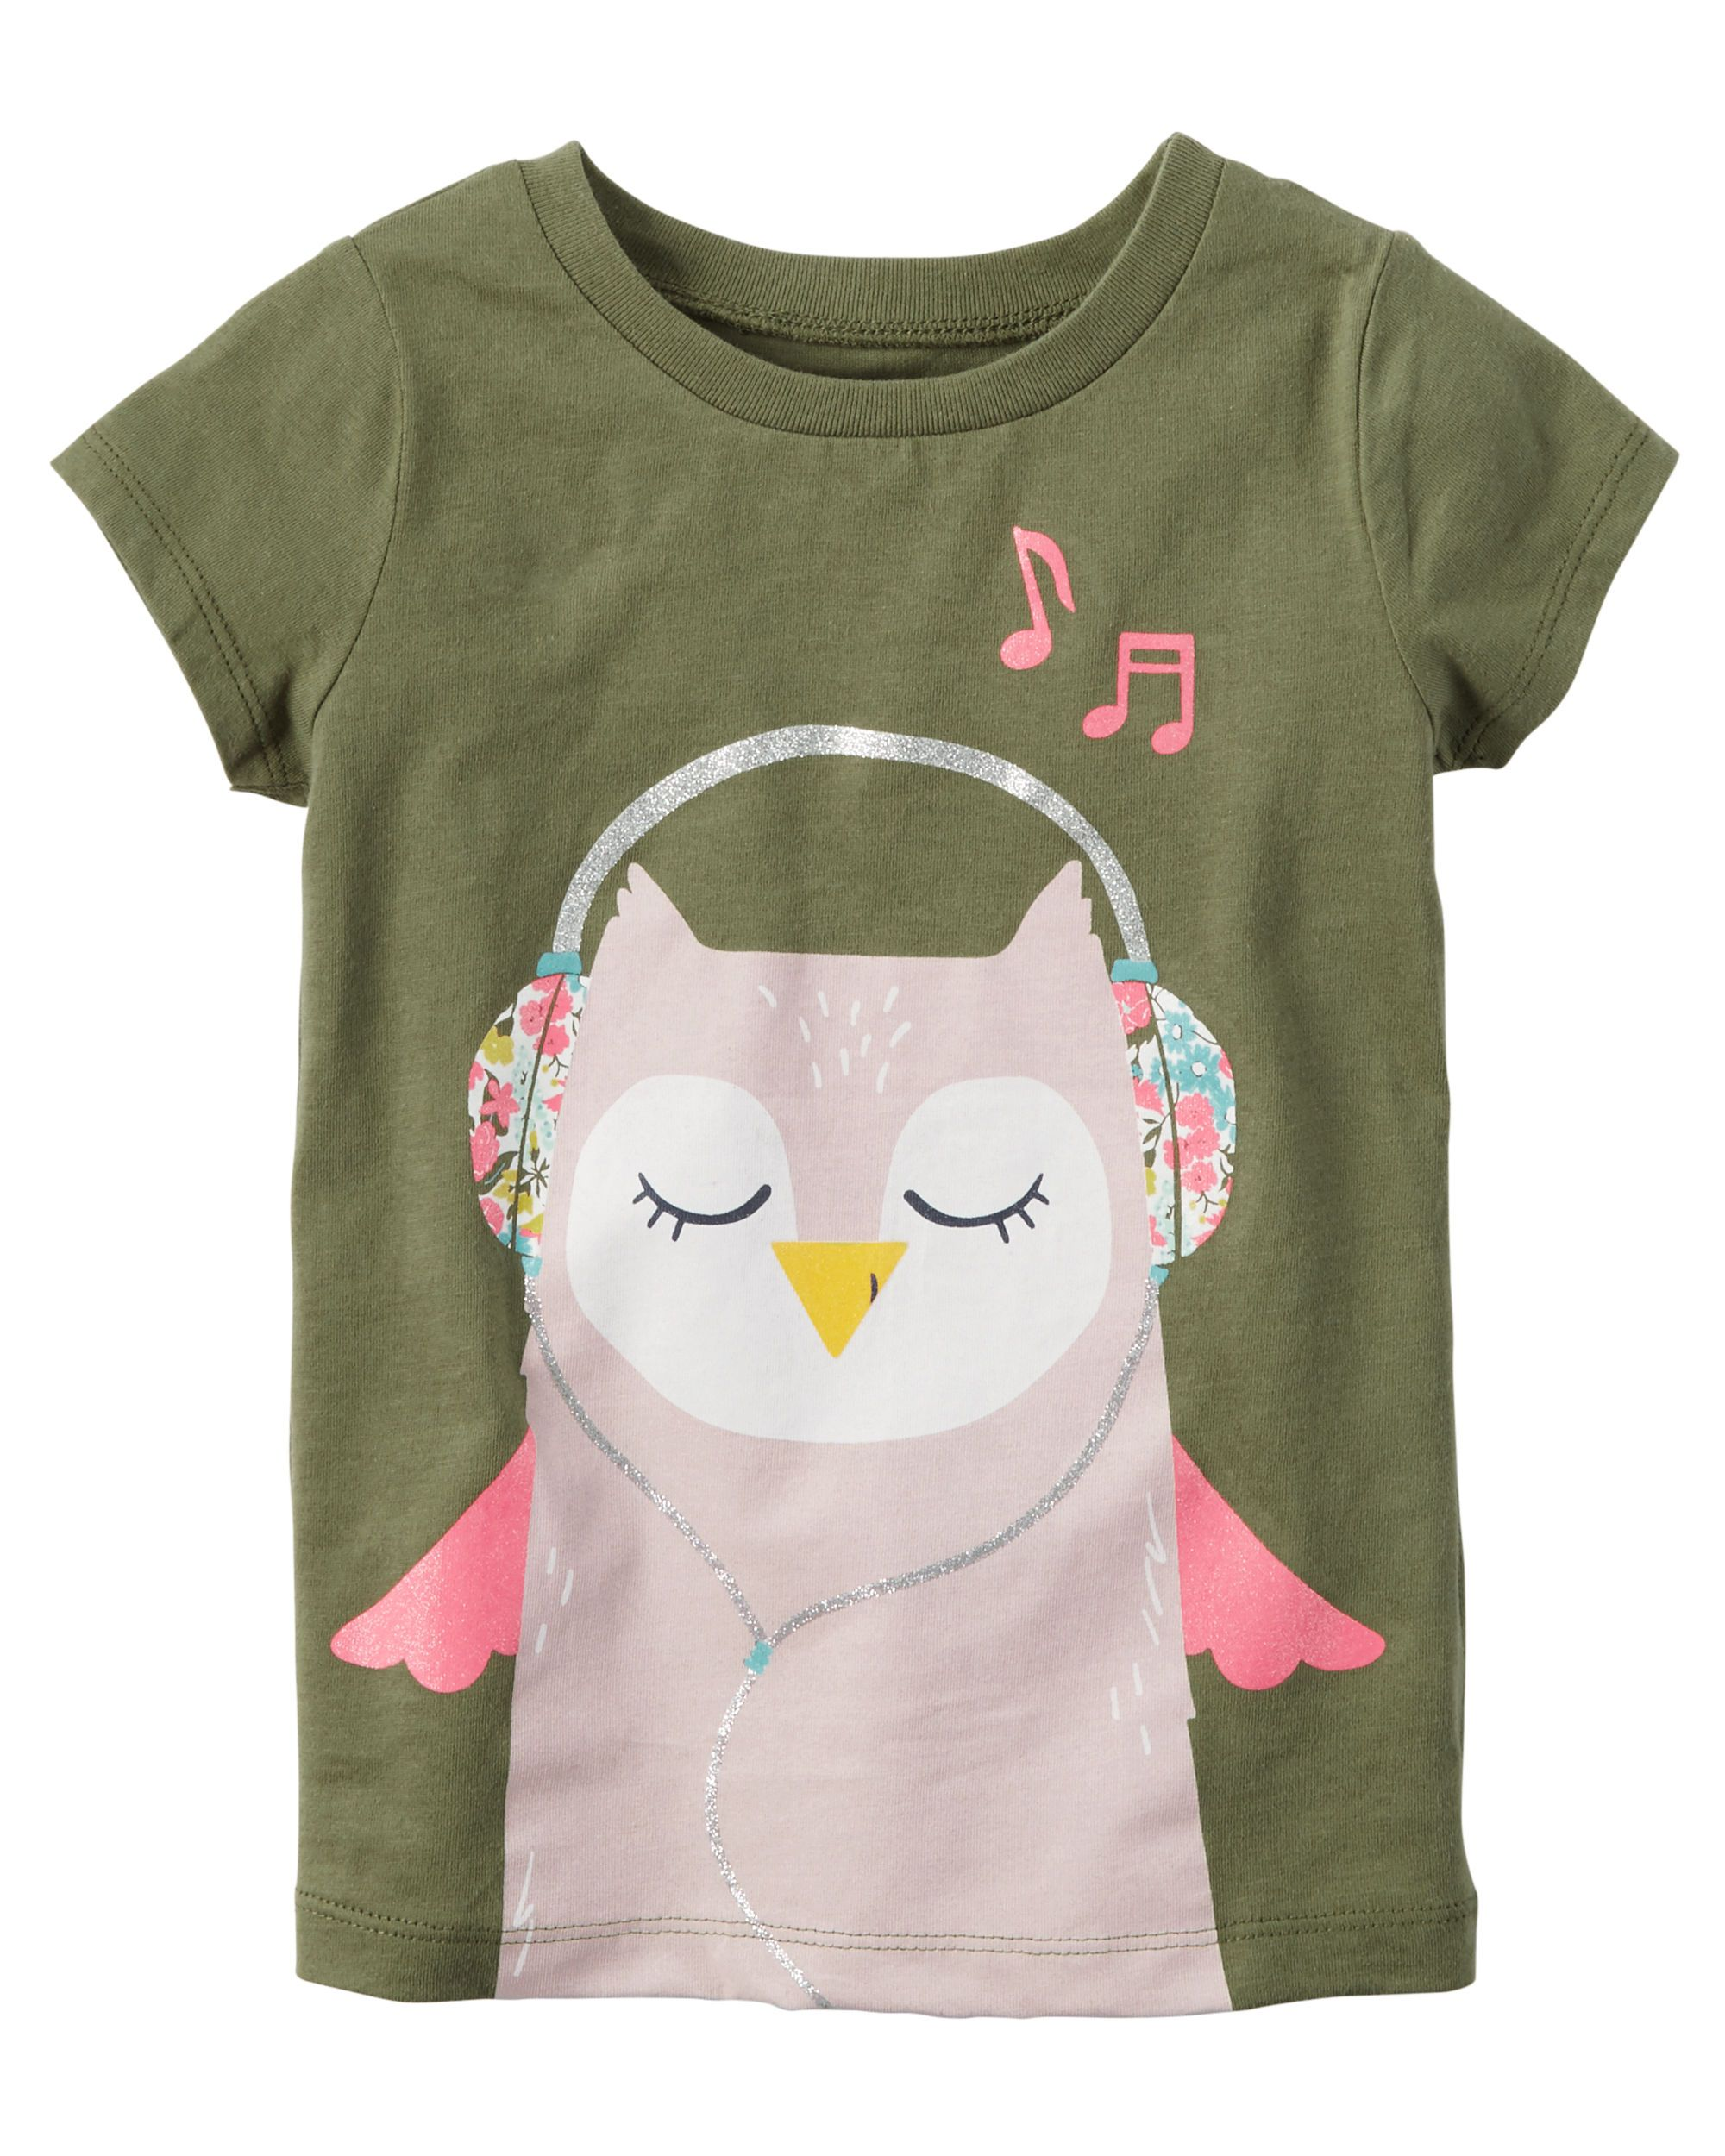 dc42e064 Glitter Owl Graphic Tee   Girl   Owl graphic, Toddler girl, Graphic tees